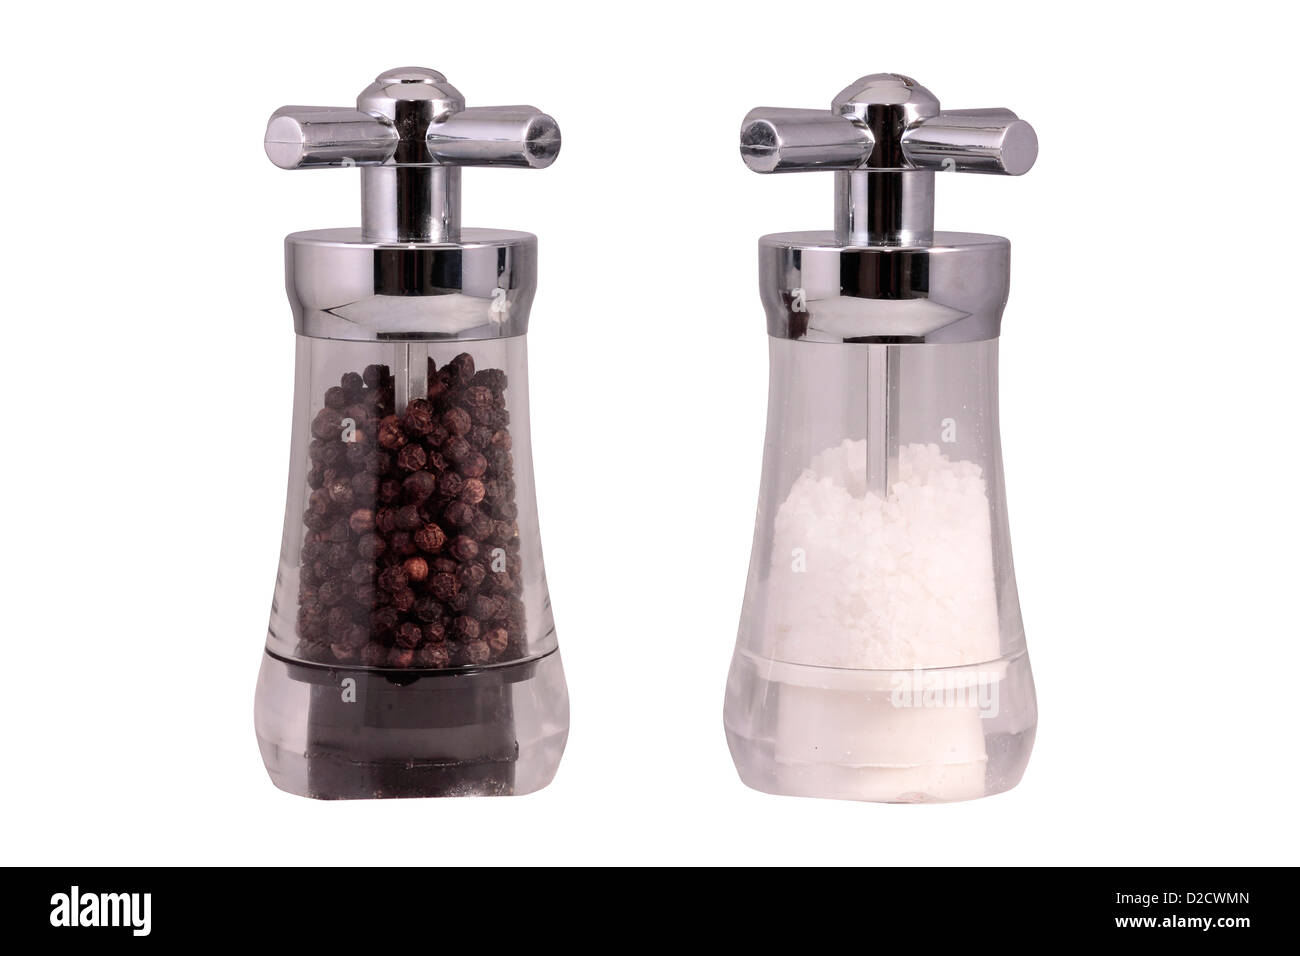 Salt and Pepper Mill isolated on white background - Stock Image